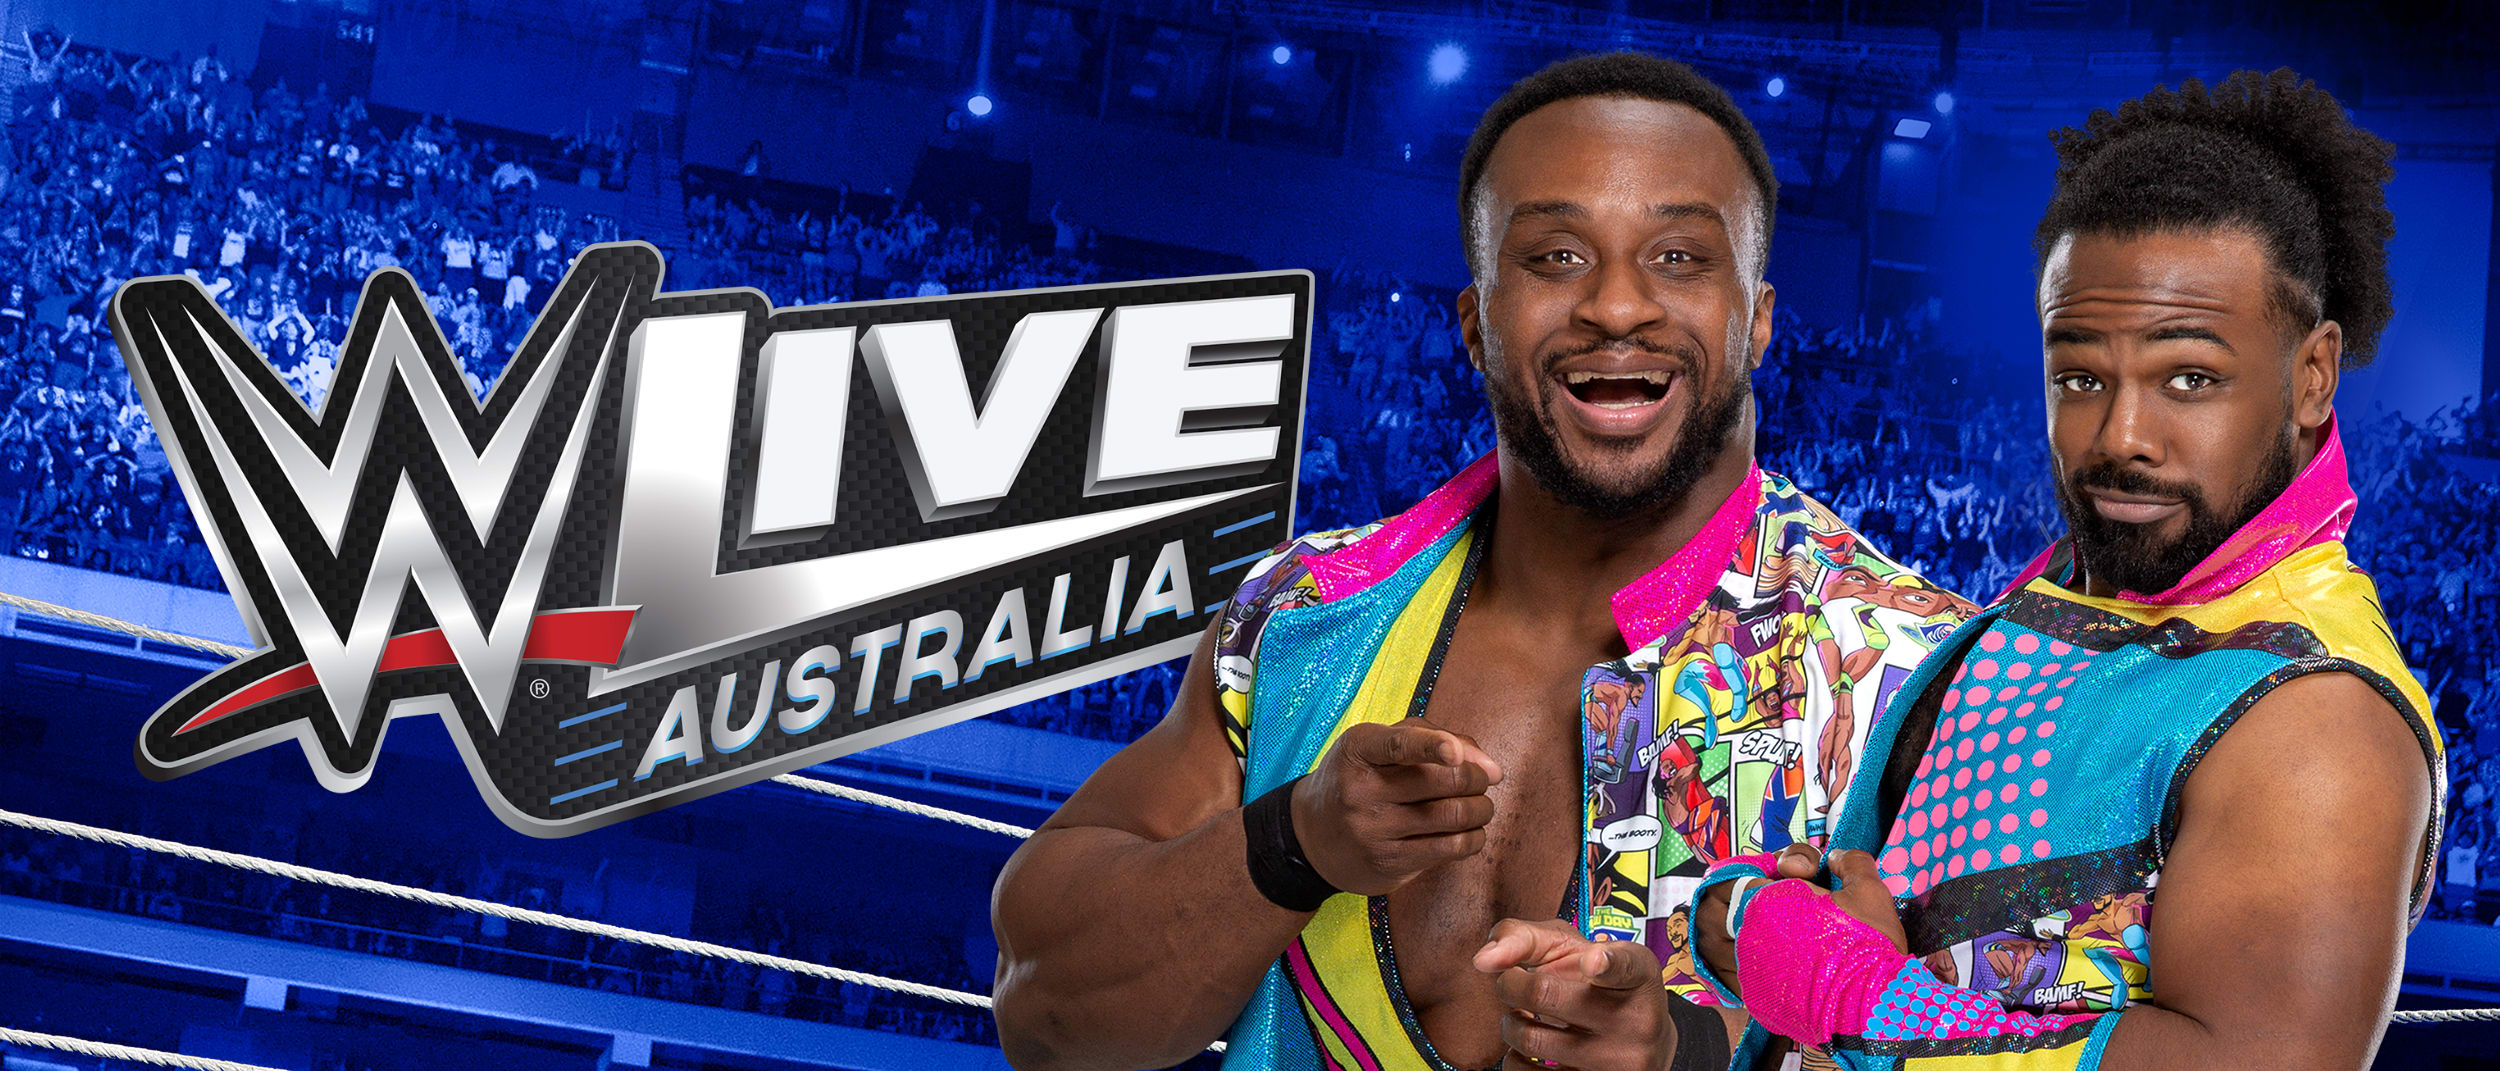 WWE Superstars Big E and Xavier Woods live appearance